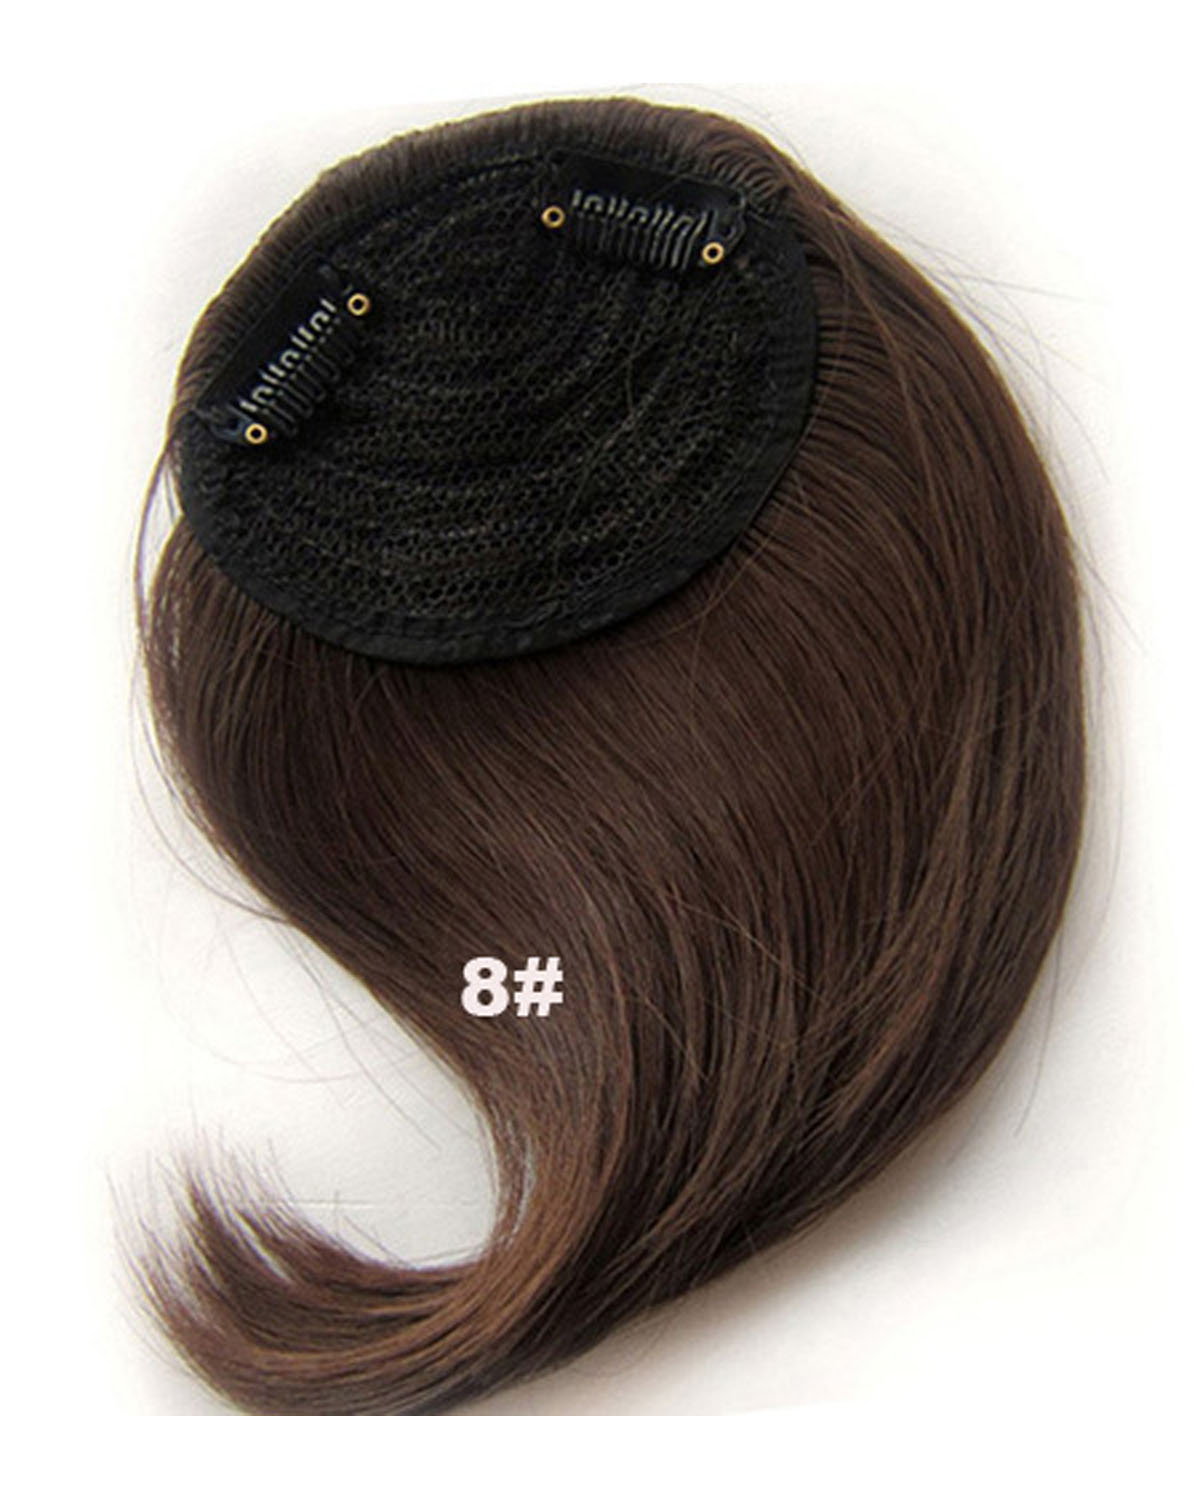 Girls Pretty Straight Short Bangs Clip In Synthetic Hair Extension